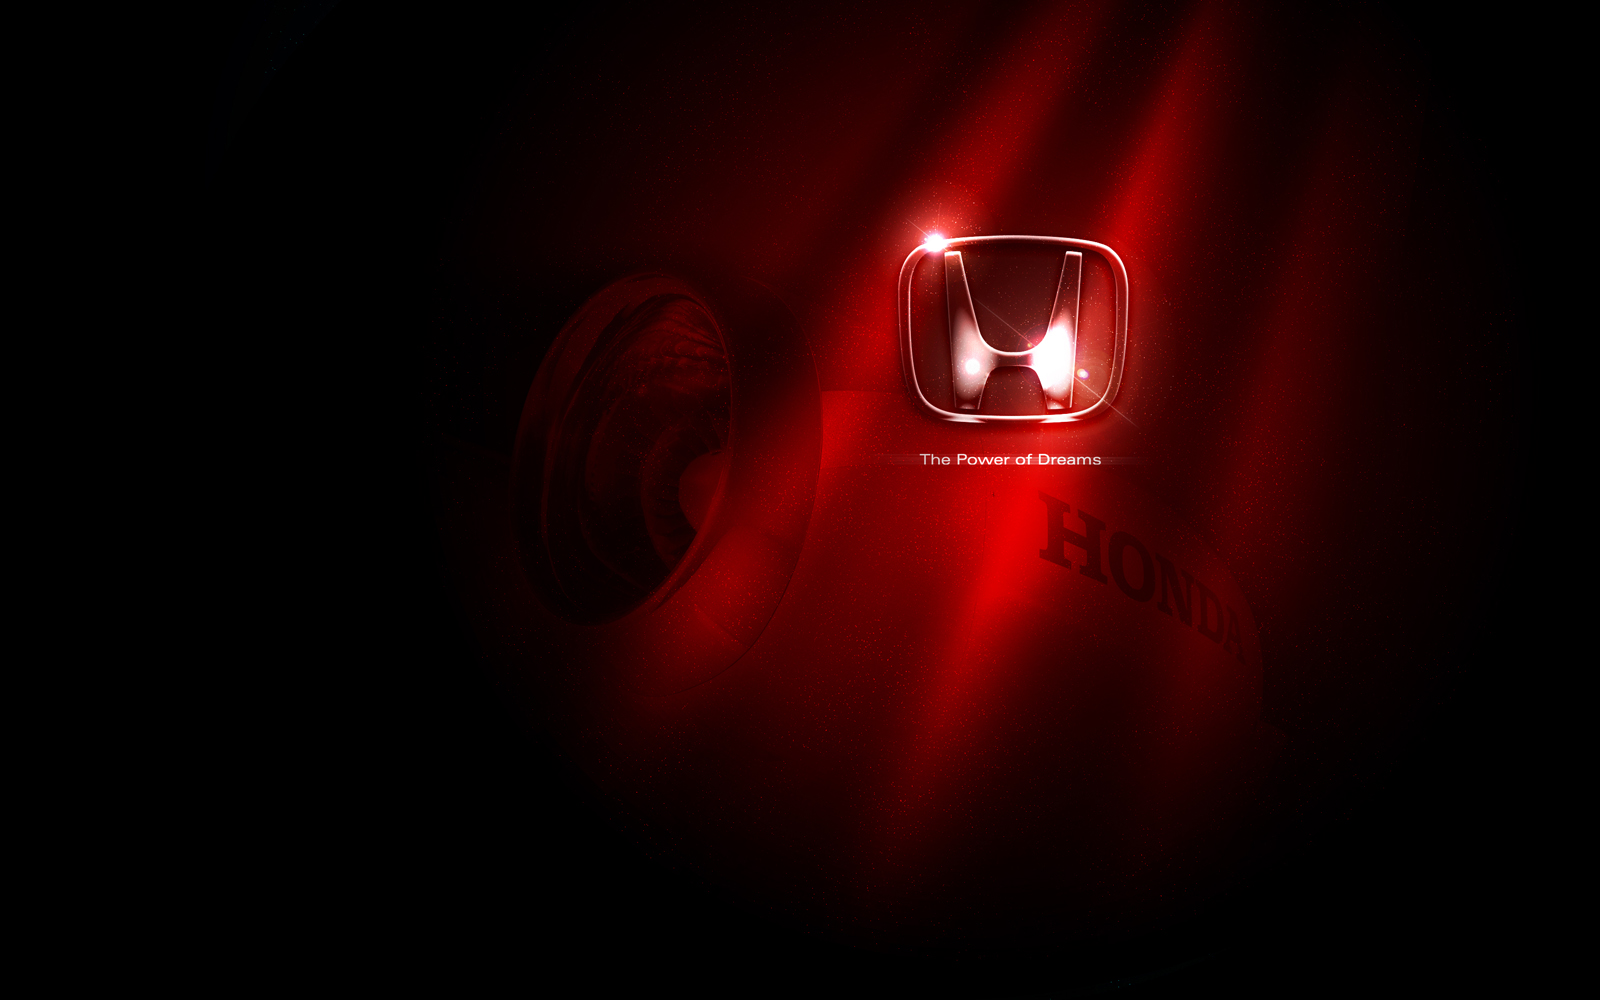 honda logo the power of dreams car hd wallpaper 3763 hd html